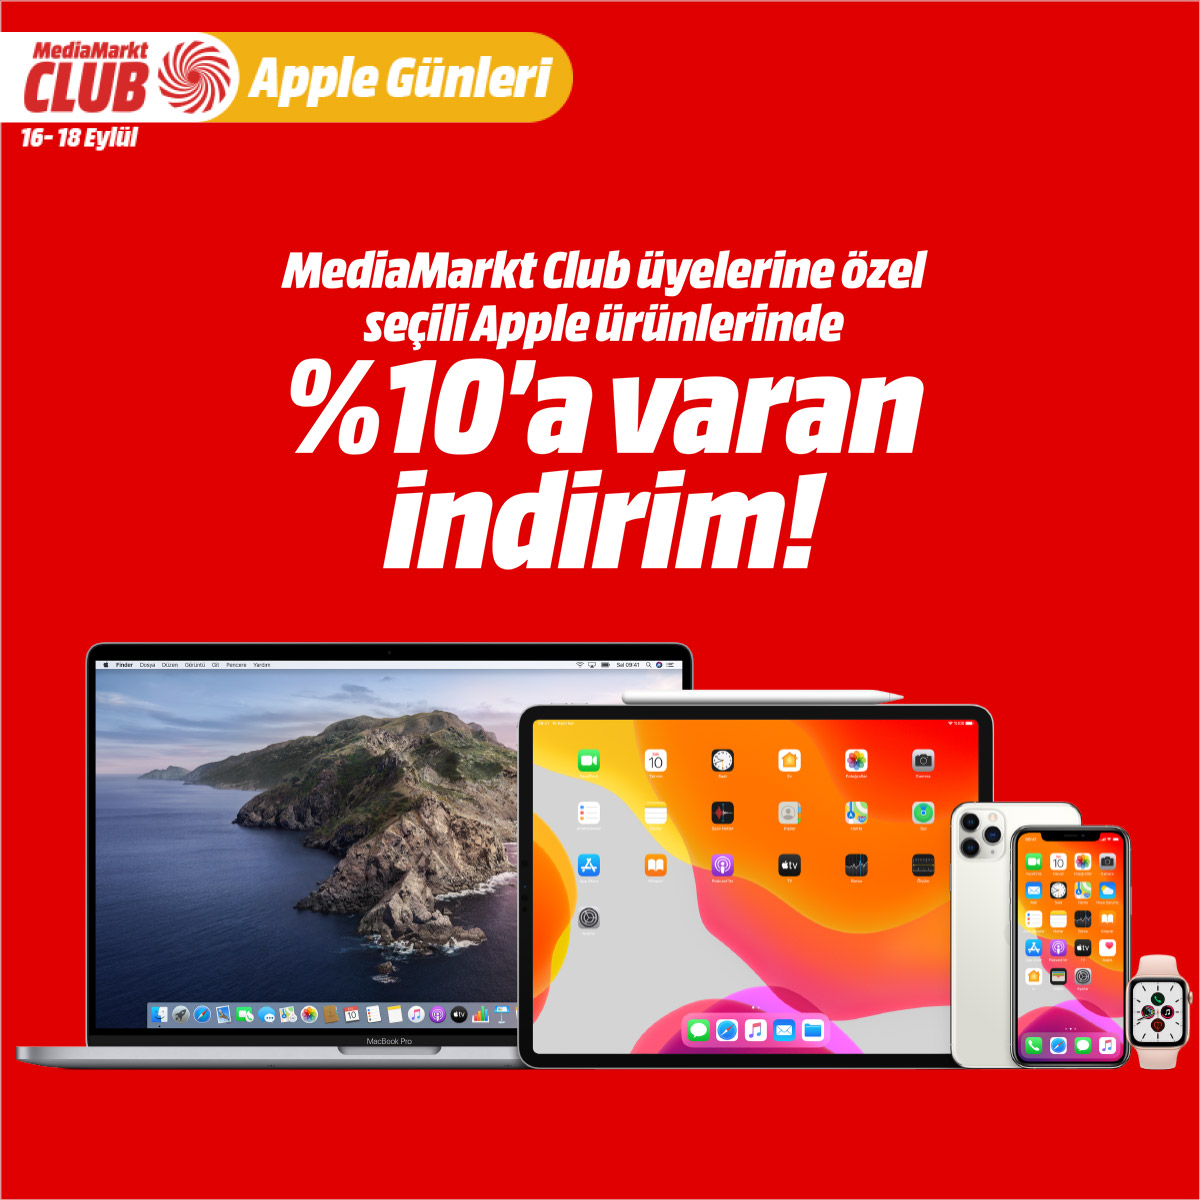 MediaMarkt Apple